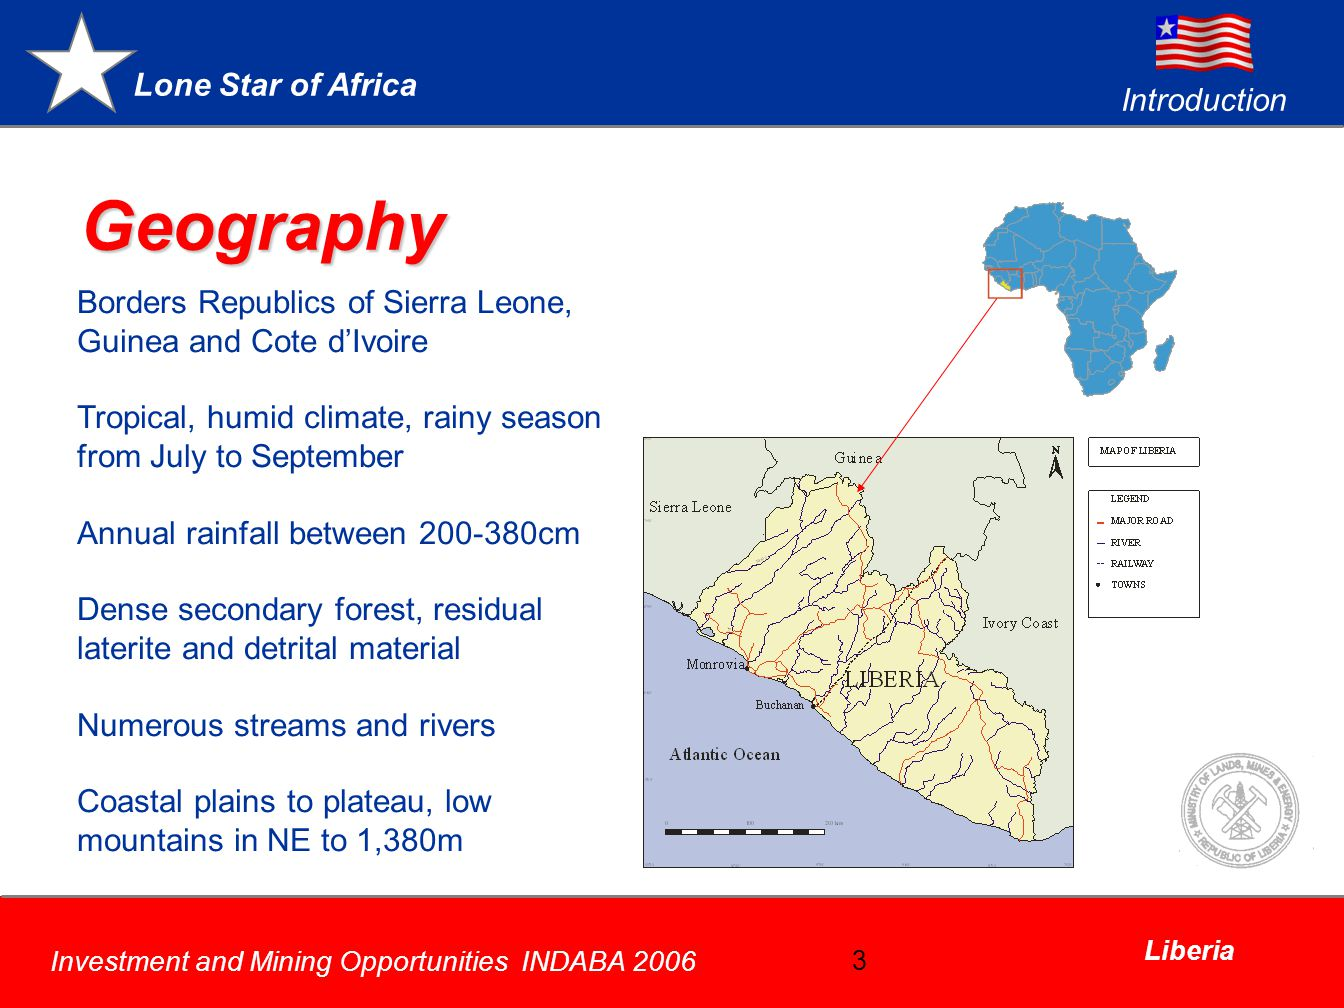 Lone Star of Africa Investment and Mining Opportunities INDABA 2006 Liberia 13 Diamond Potential Alluvial diamonds mined widely in Northern, Central and Western Liberia Highly prospective Archaean craton Kimberlite dykes and pipes suggest primary source Continuous discoveries of diamondiferous kimberlites by Mano River Resources Recent discovery of a Kimberlite by DFI Recent discovery of alluvial diamonds by villagers in the South east Potential areas are still available for further investment